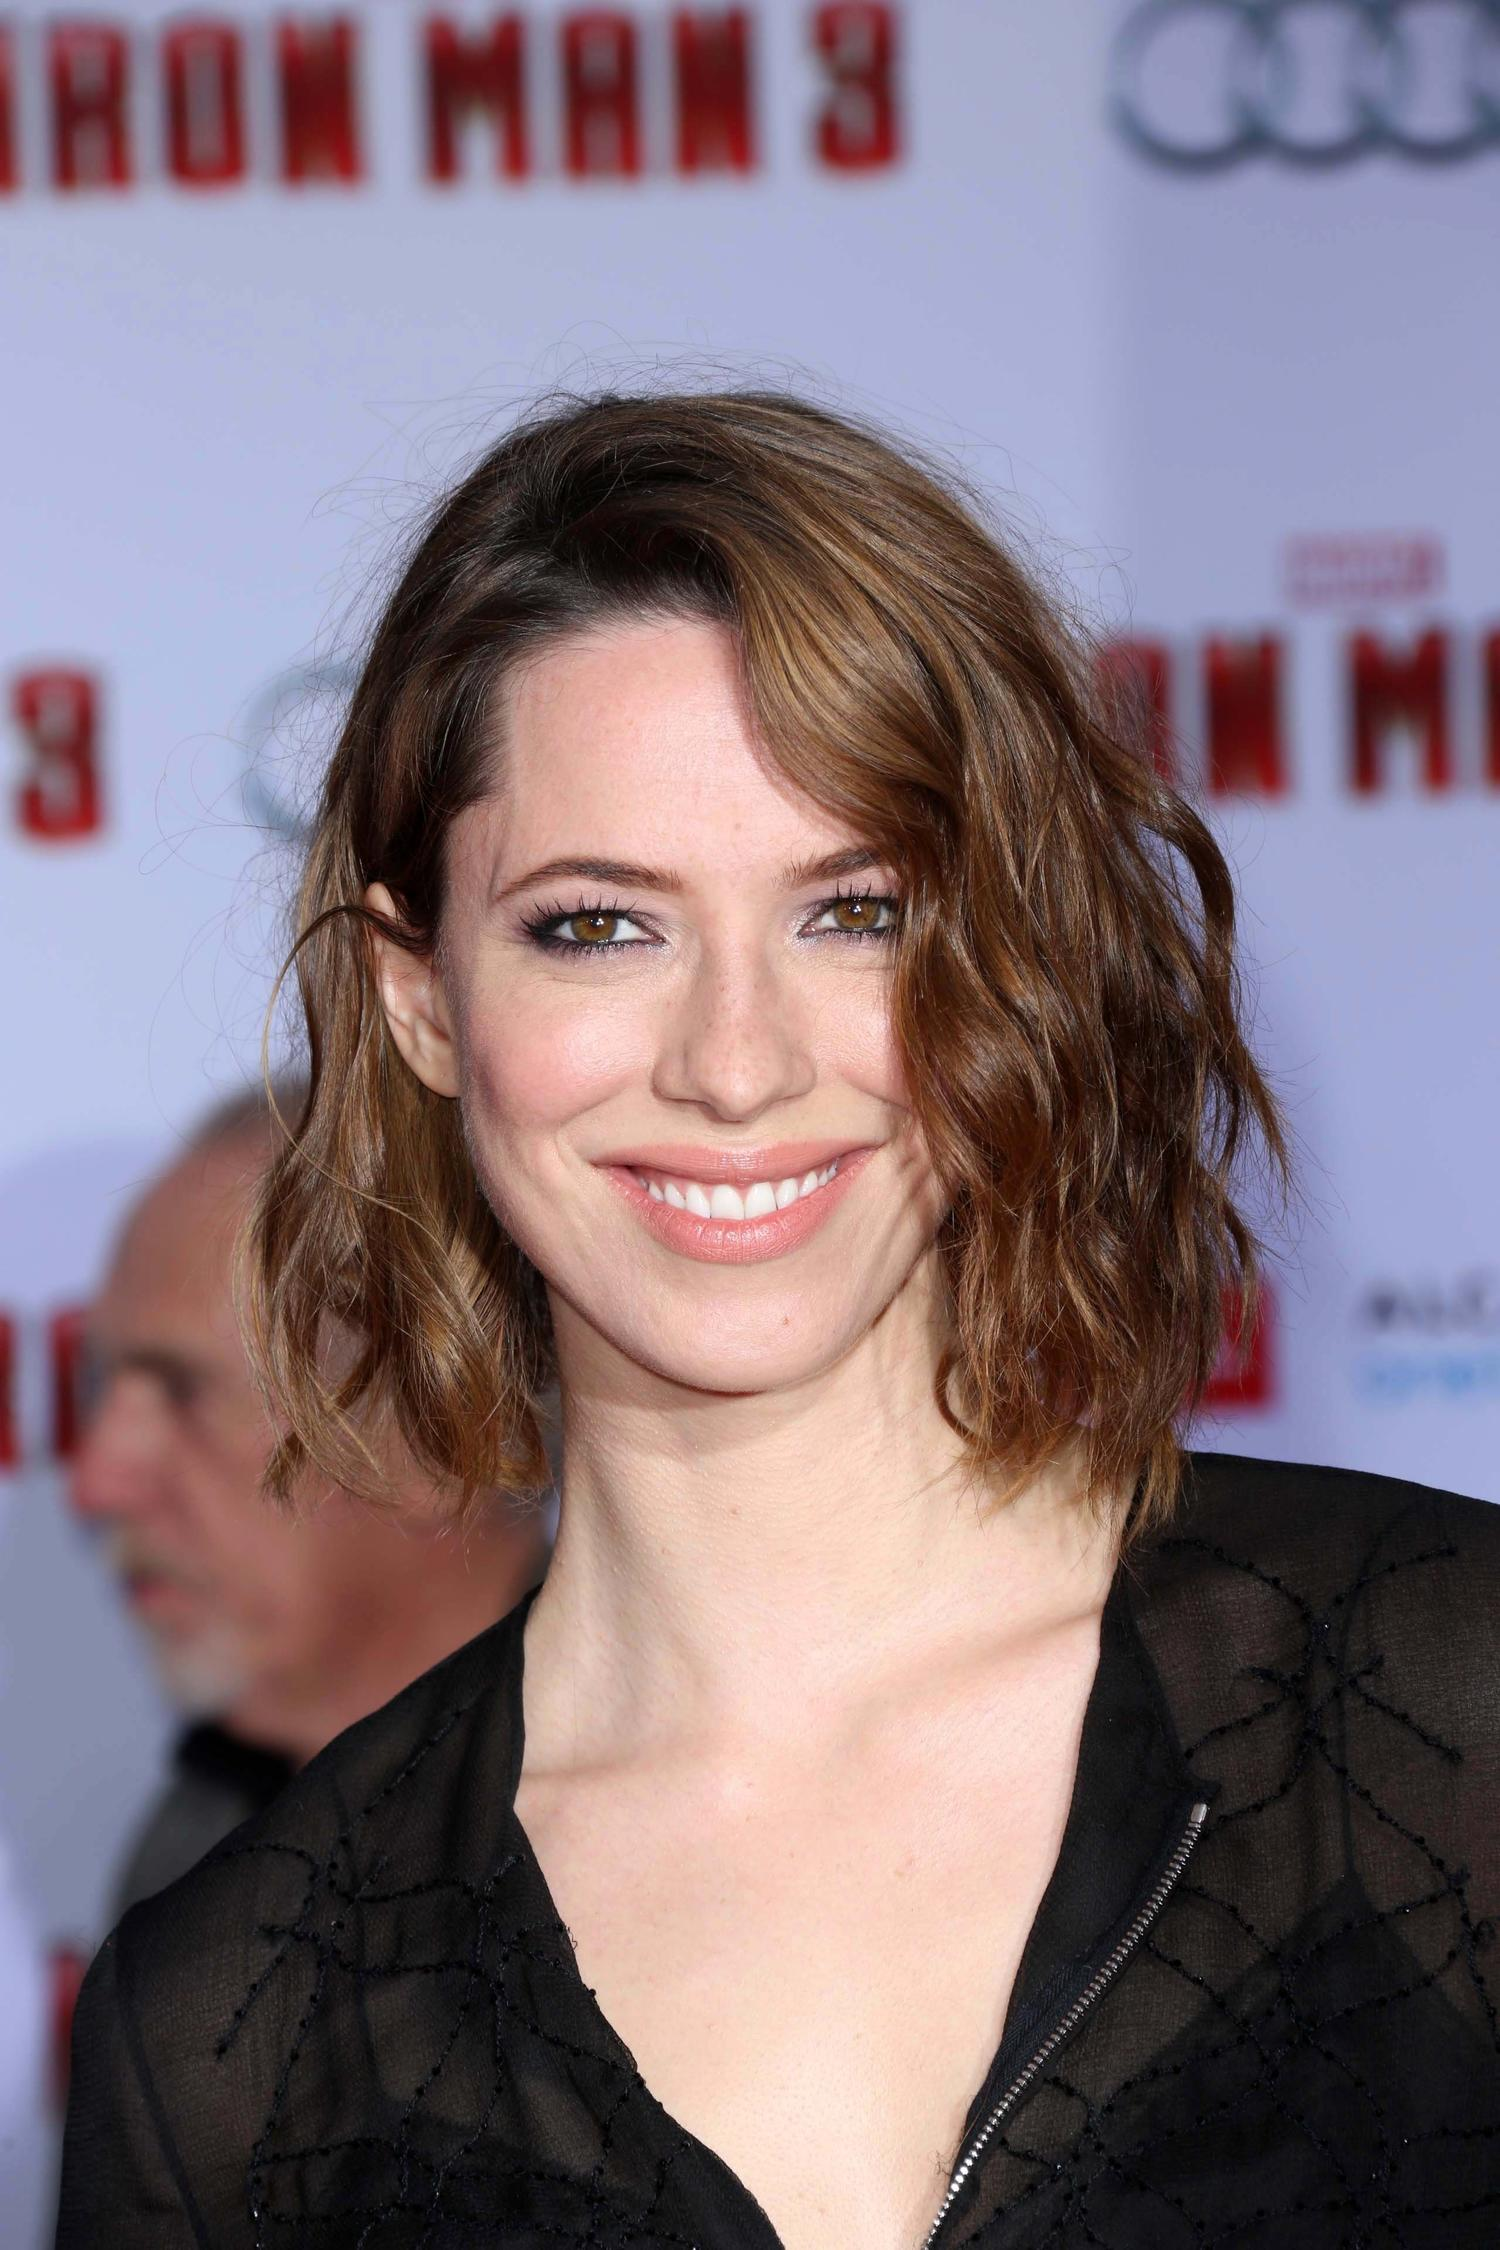 short hair fashion style 12 classic hairstyles more 4918 | rebecca hall s bukley shutterstock 1